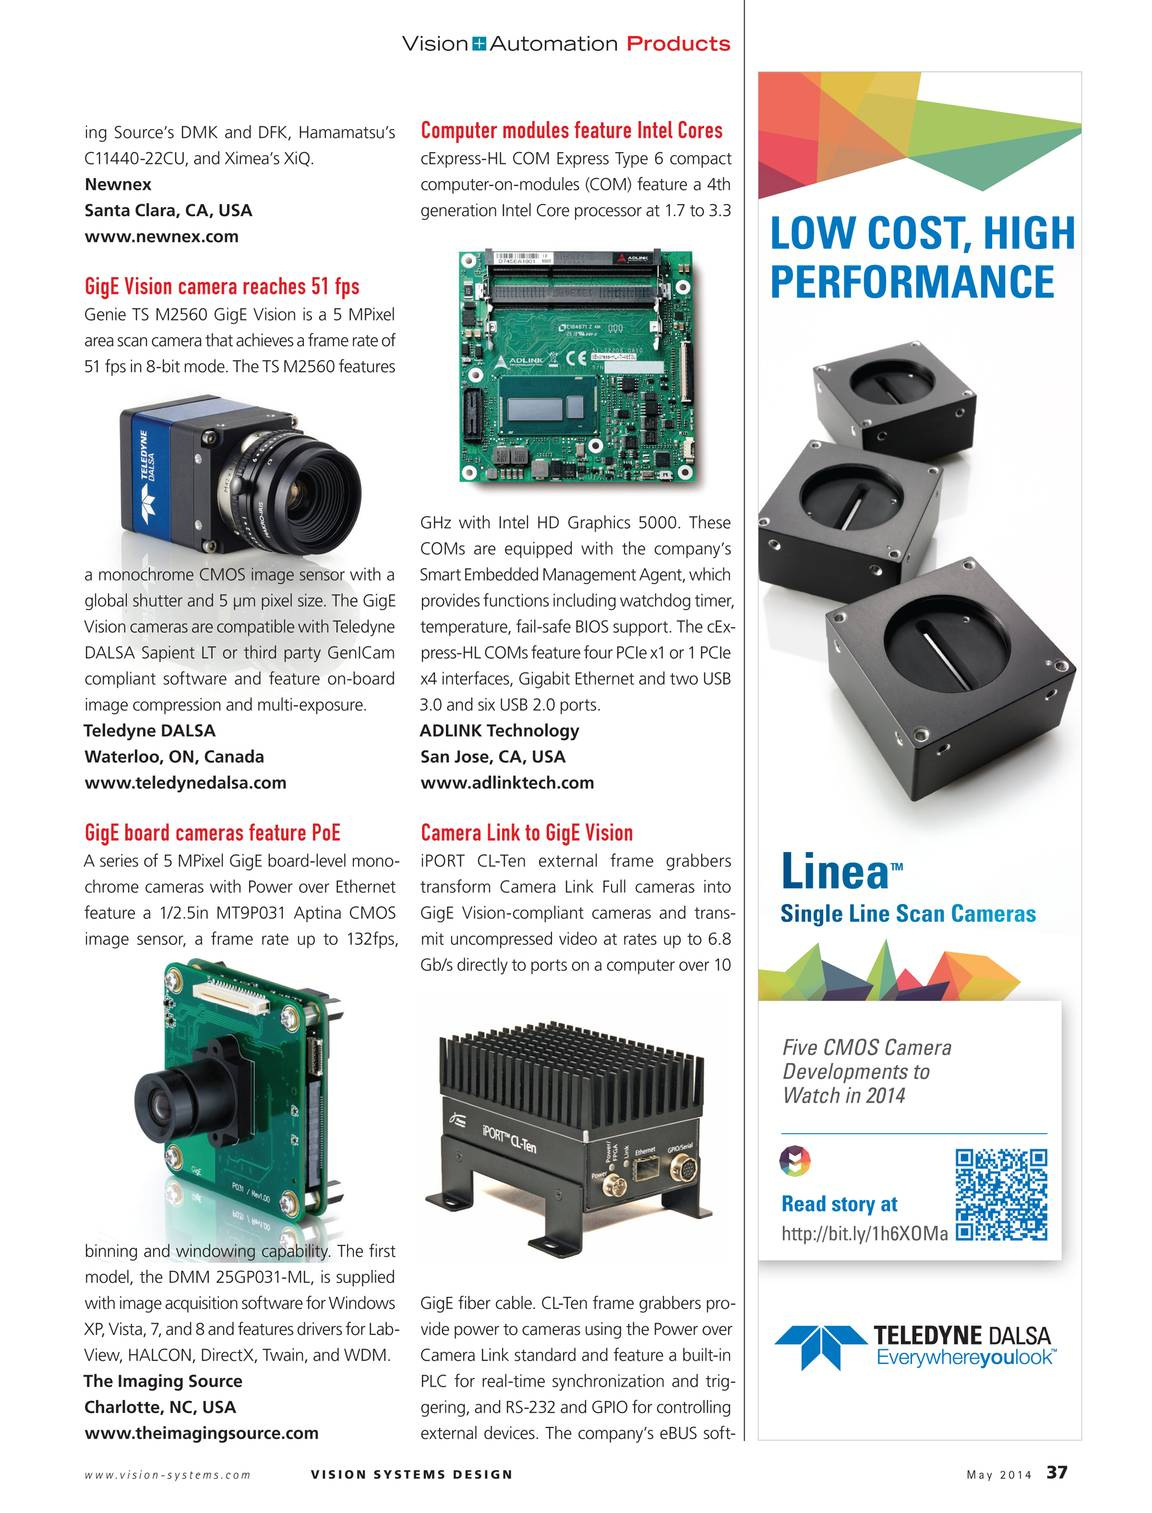 Vision Systems - May 2014 - page 37